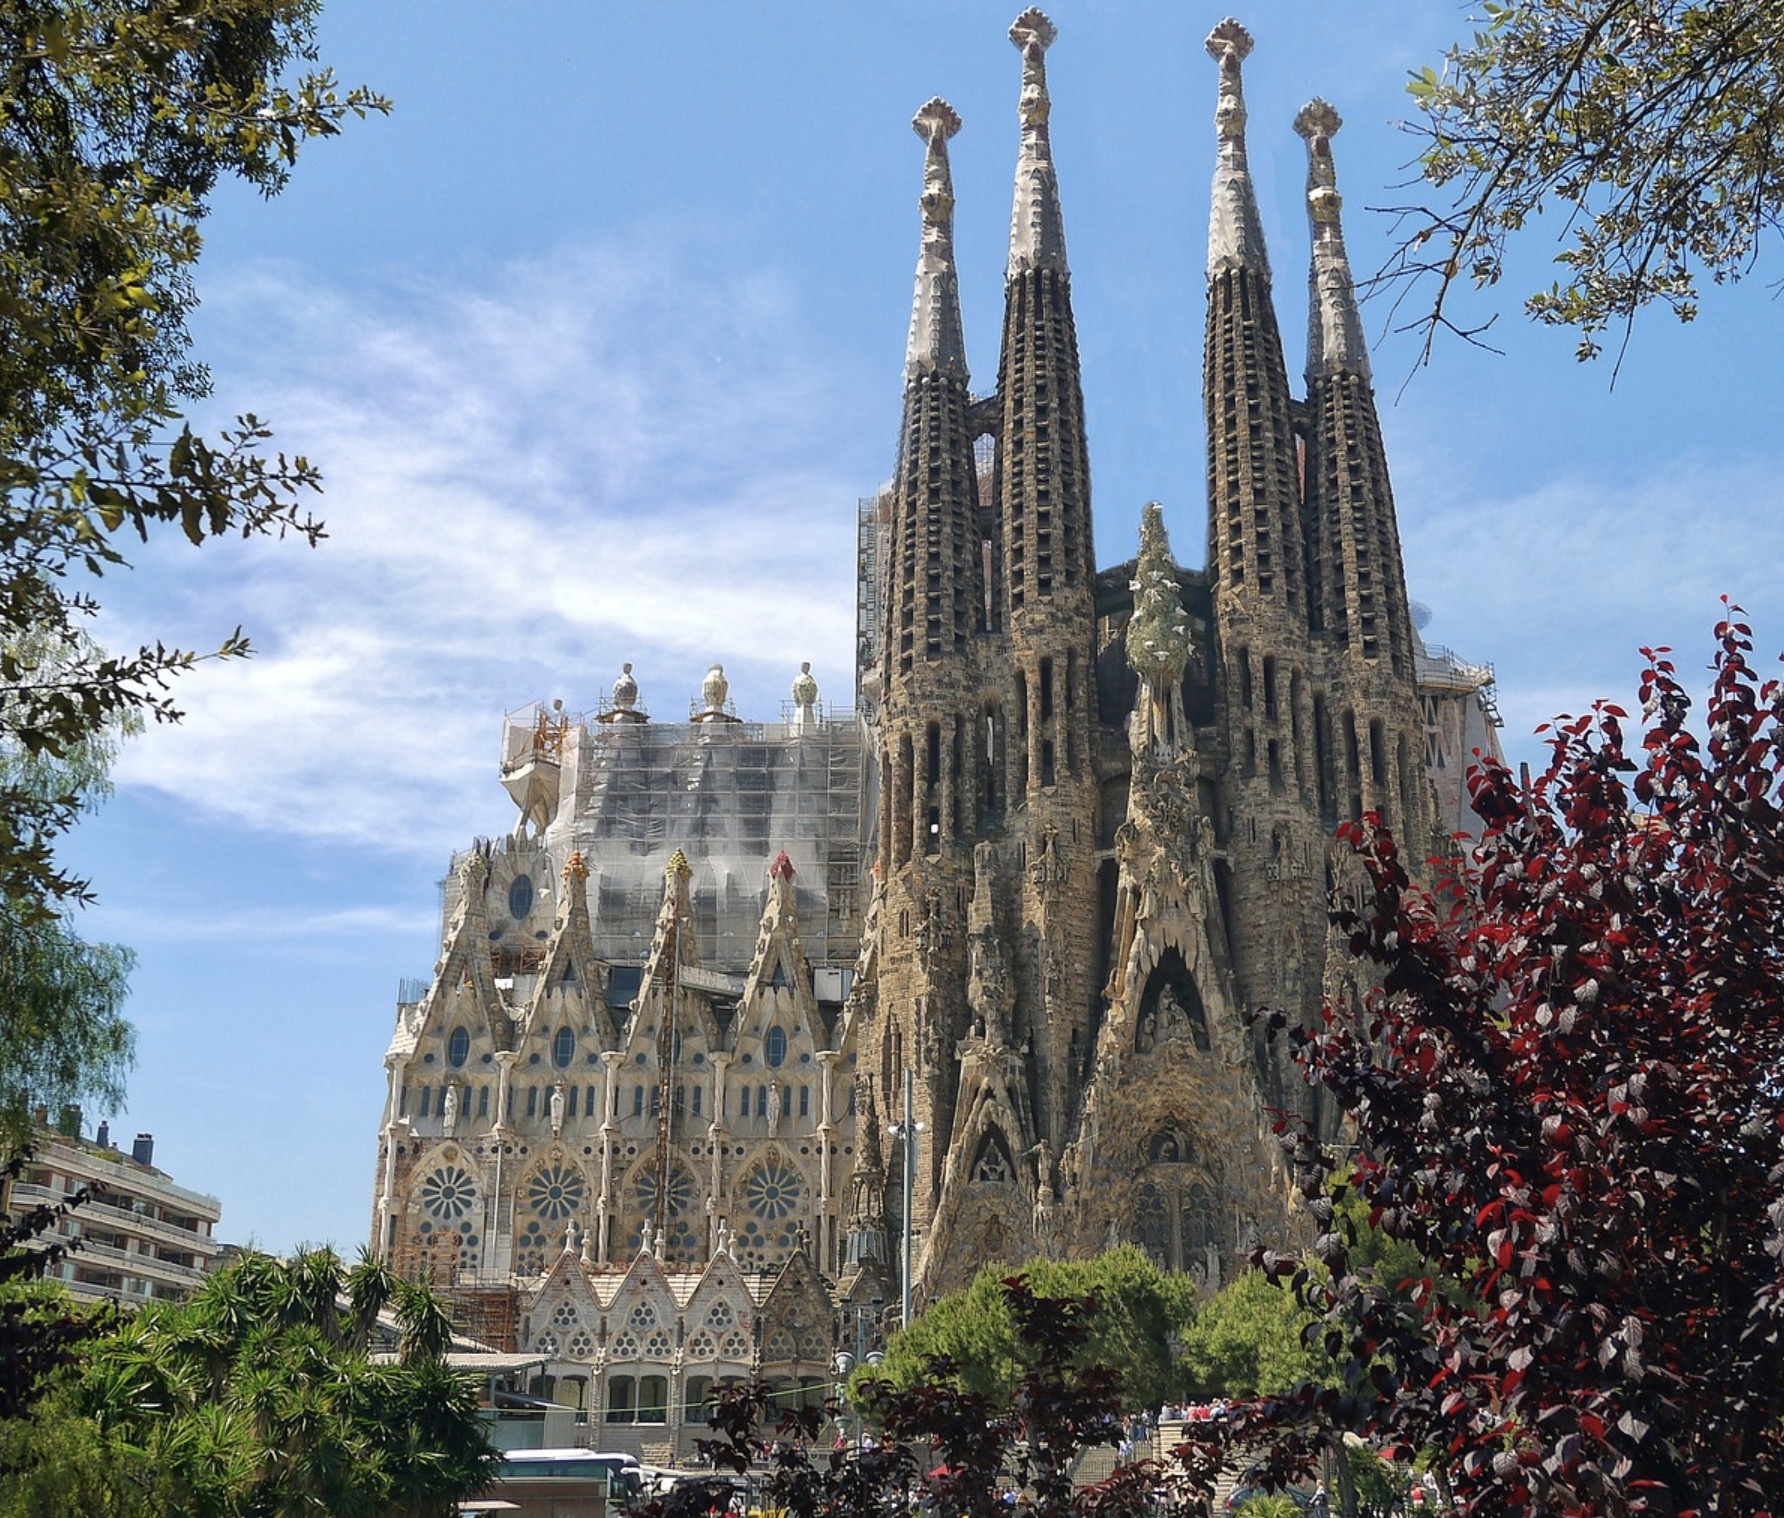 Flights to Barcelona as low as $130 with a stopover and a full carryon